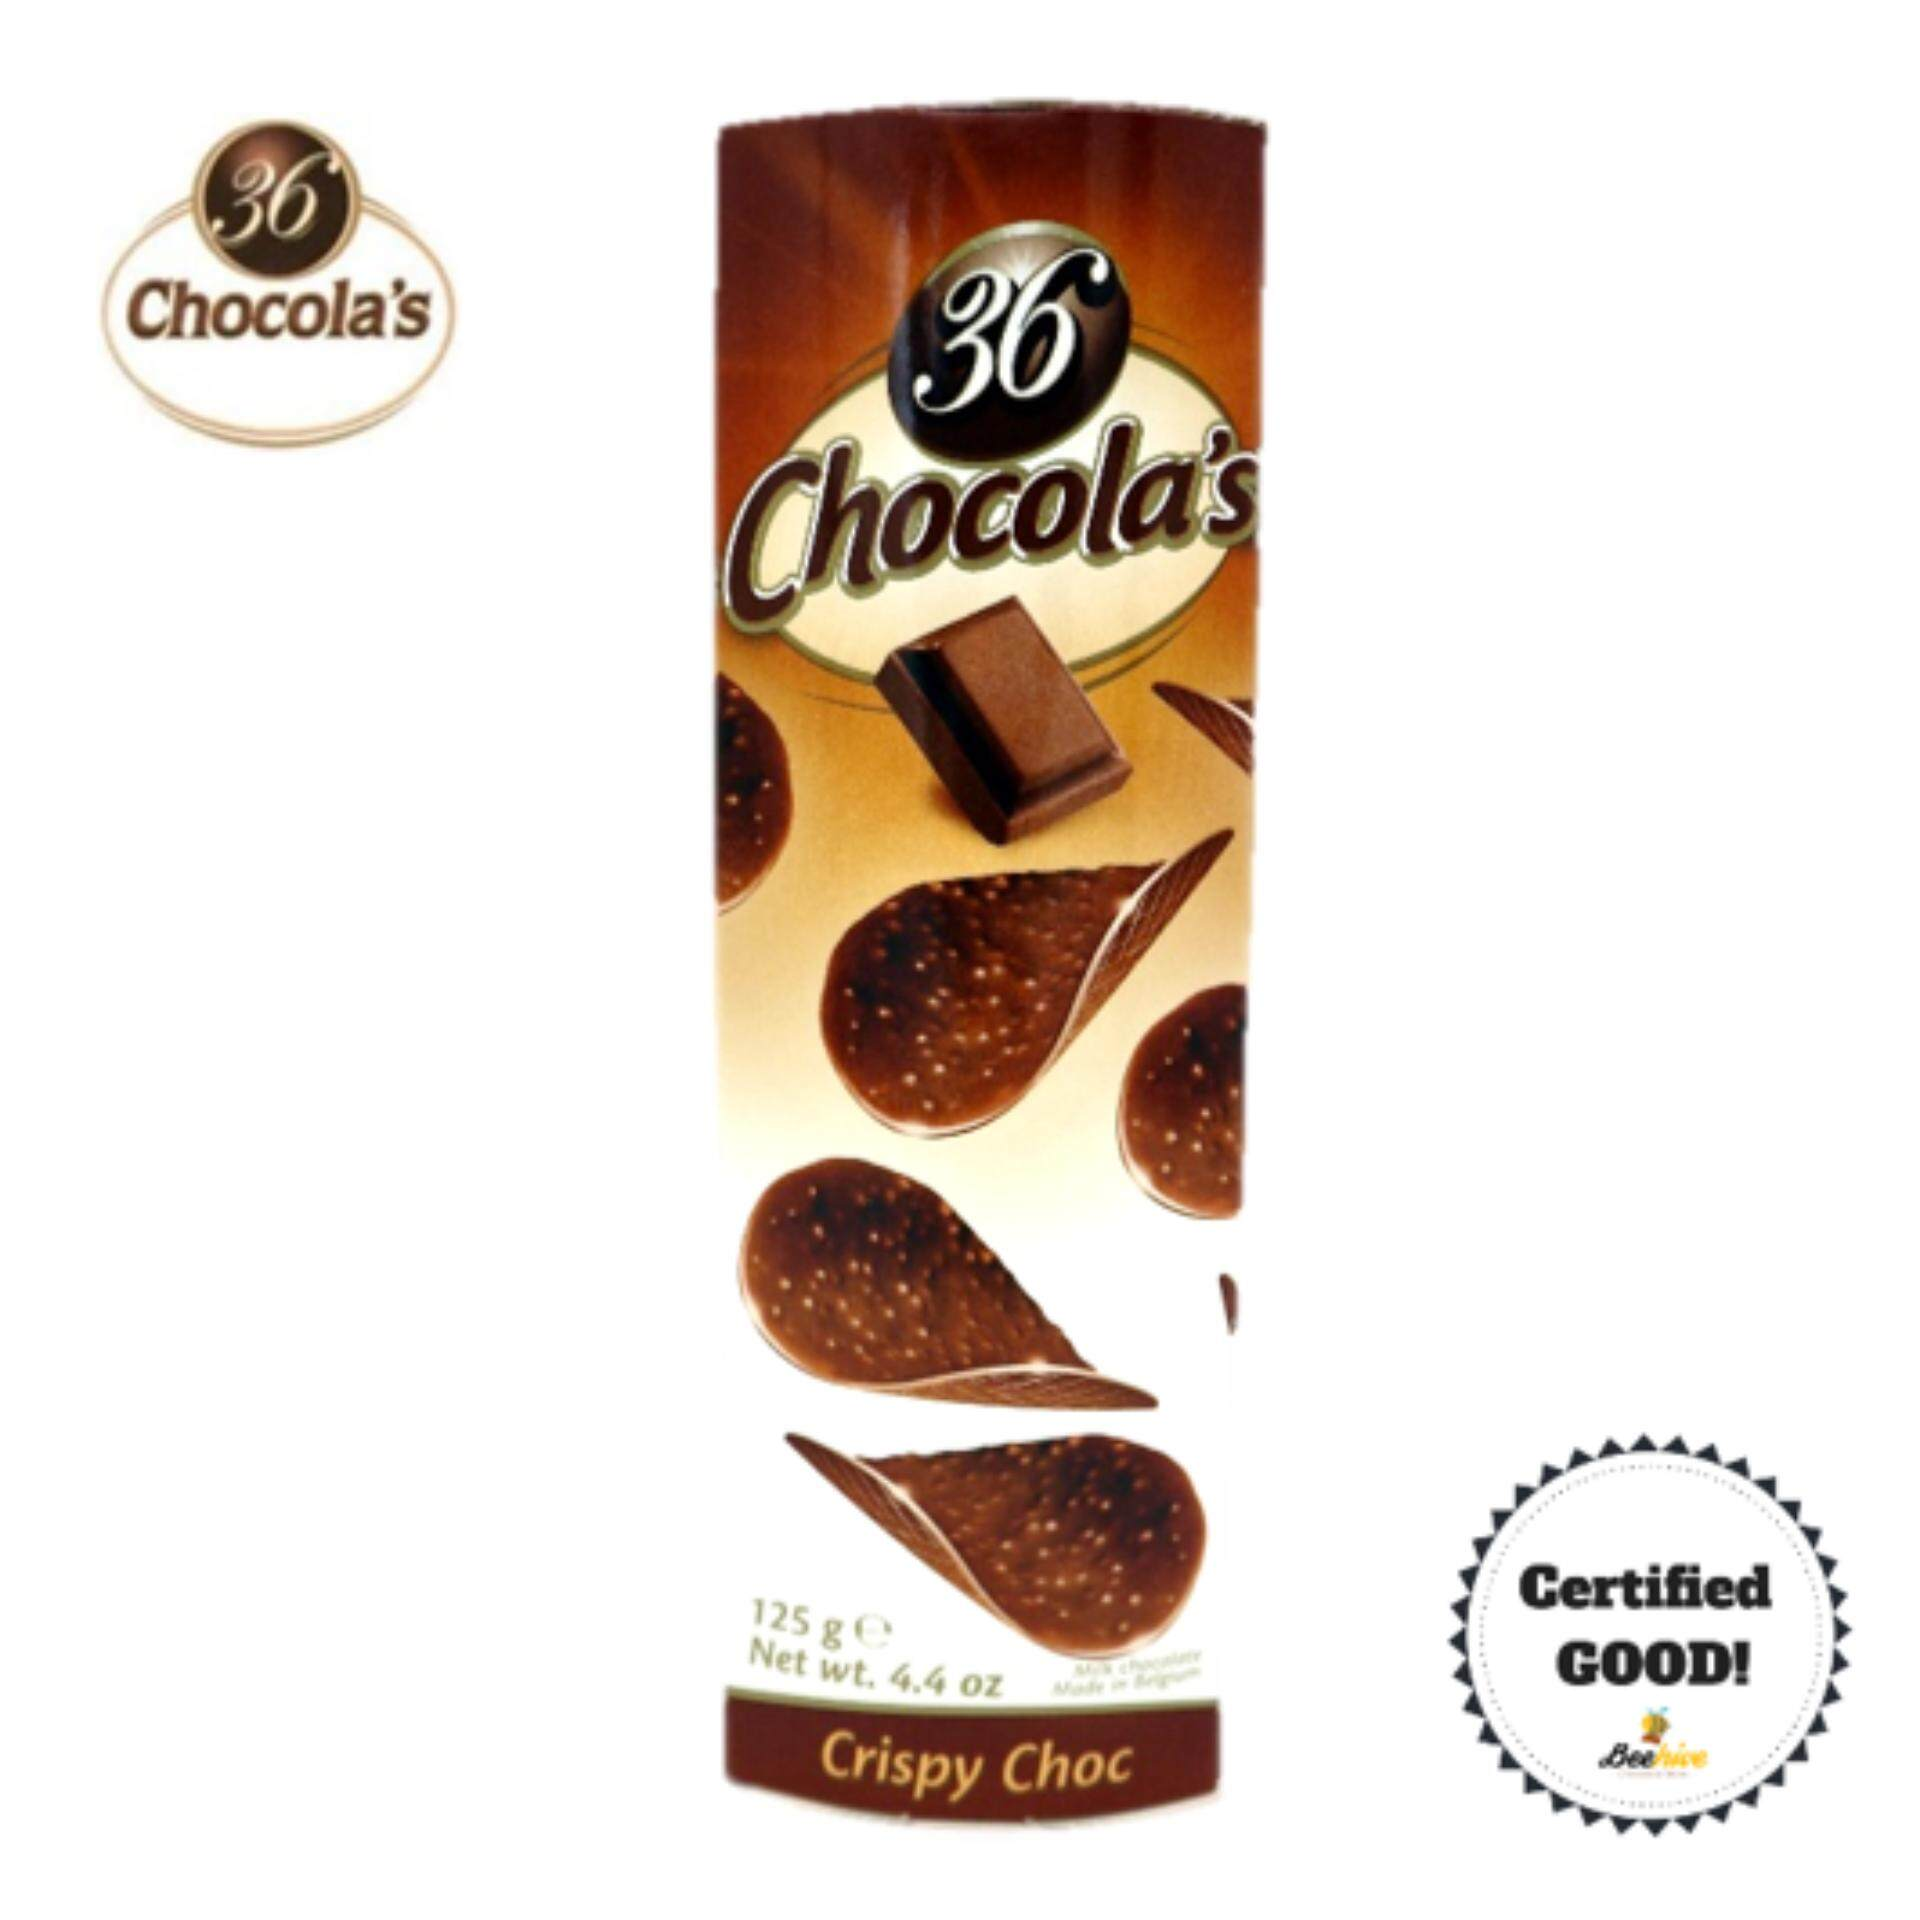 Malaysia Online Grocery Selling Chocolate Jules Destrooper Apple Thin Biscuits 100 Gr 36chocolas Crispy Choc 125g